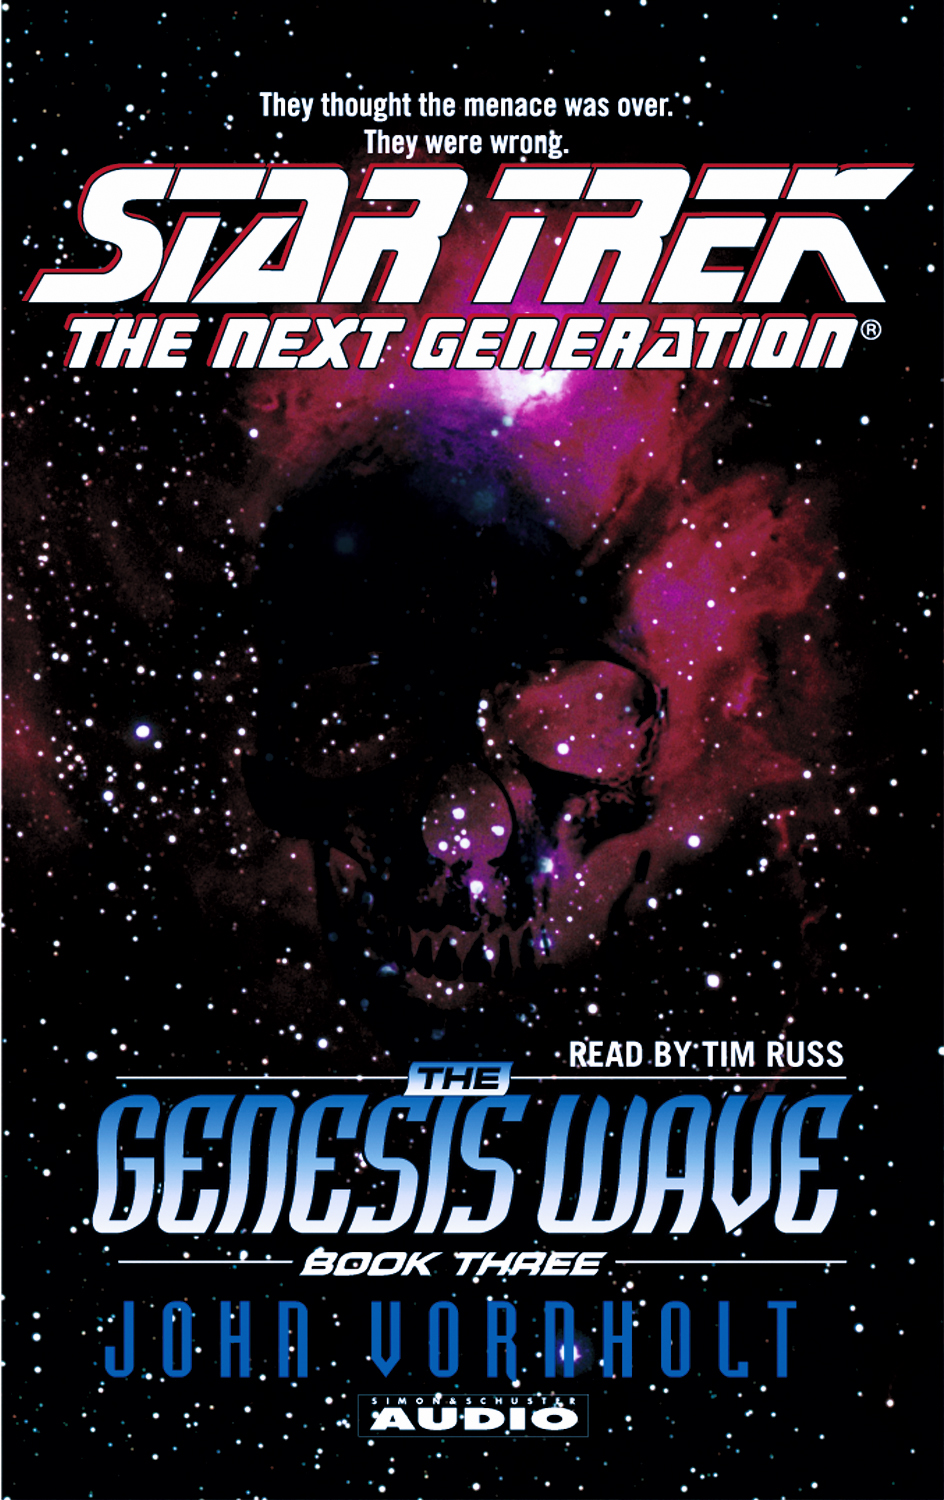 The star trek the next generation the genesis wave book 3 cvr9780743546591 9780743546591 hr the star trek the next generation the genesis wave book 3 fandeluxe Document